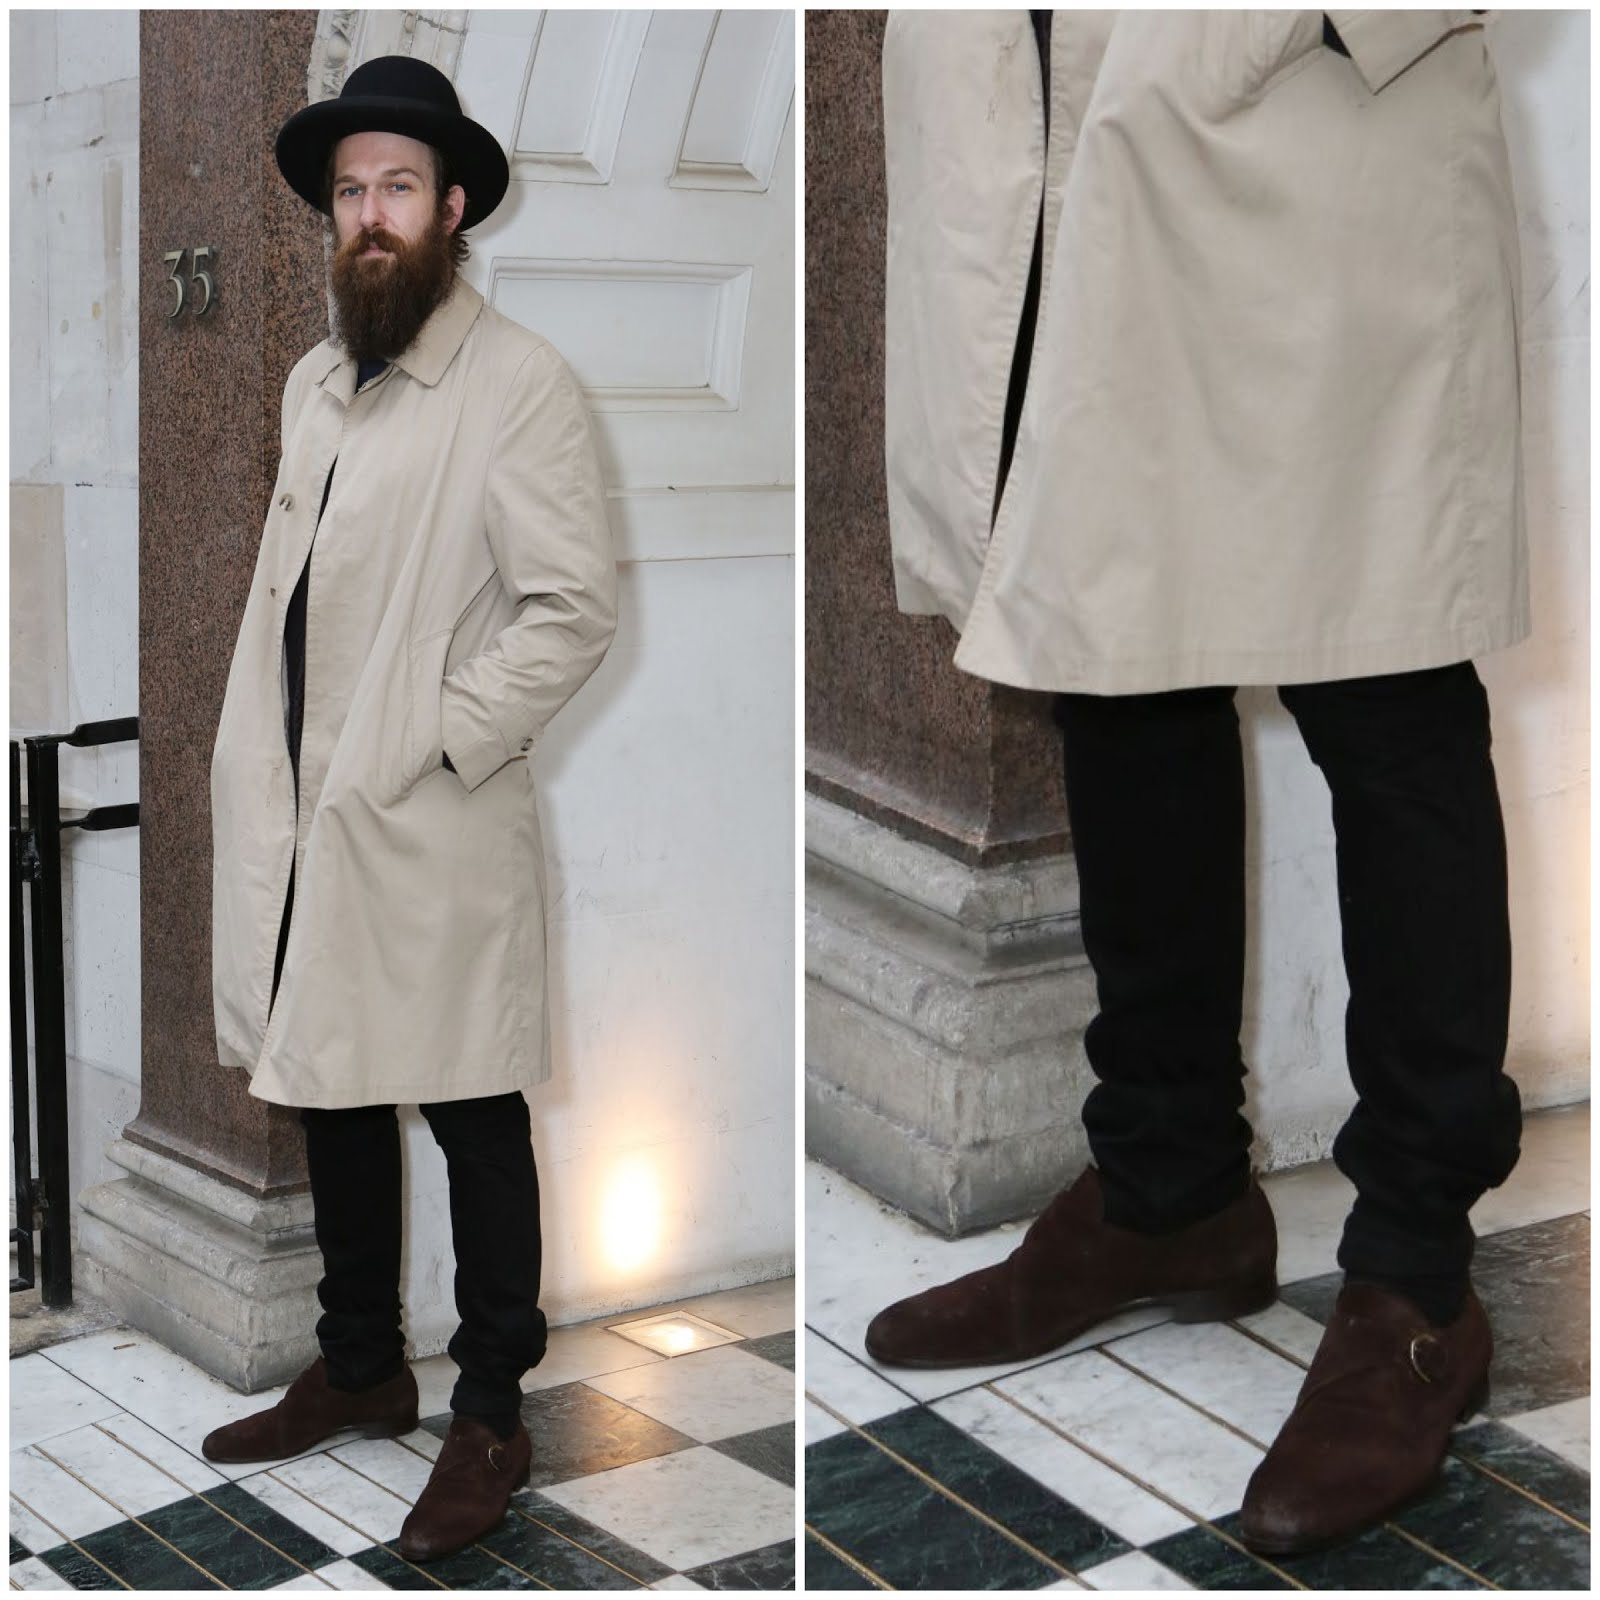 00O00 Menswear Blog: Richie Culver in Jimmy Choo Byron suede monk strap shoes - Opening of new Jimmy Choo menswear store No.35a Dover Street London